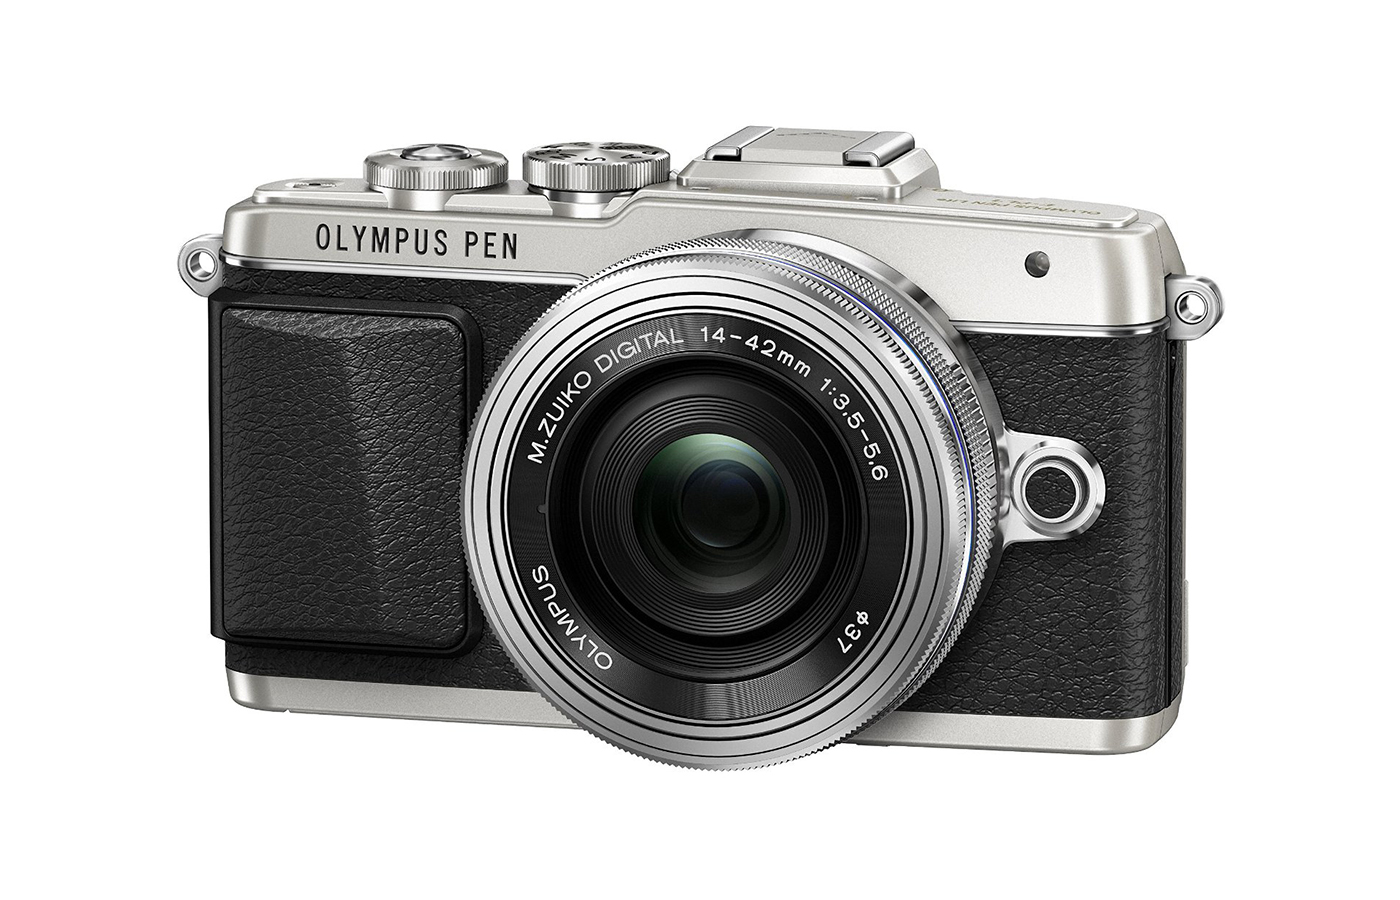 Getting Started with CSC: 6 Mirrorless Cameras Under $600, Olympus P EL7 Cameraplex